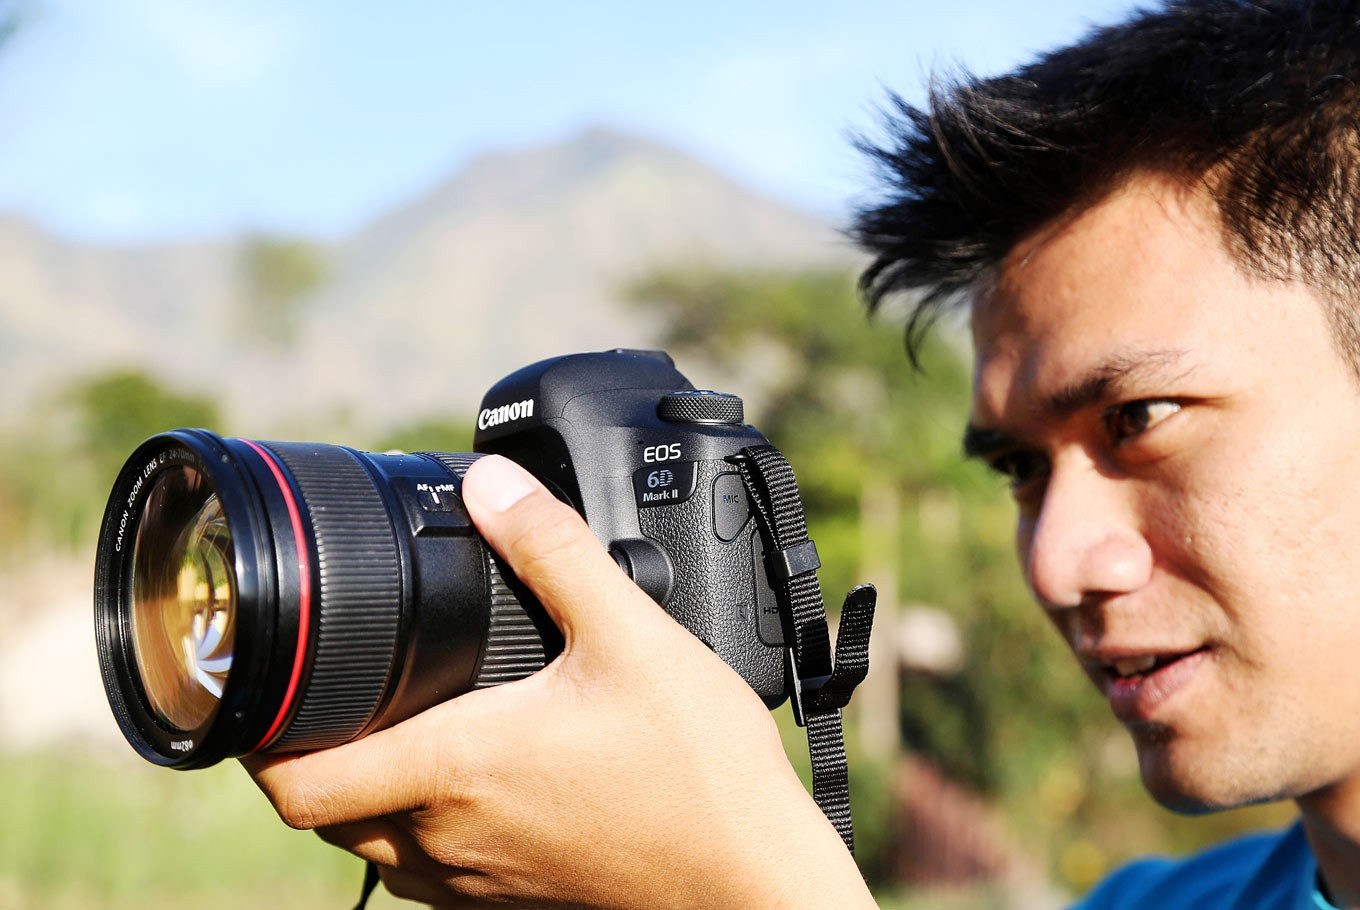 Canon introduces upgraded EOS 6D DSLR